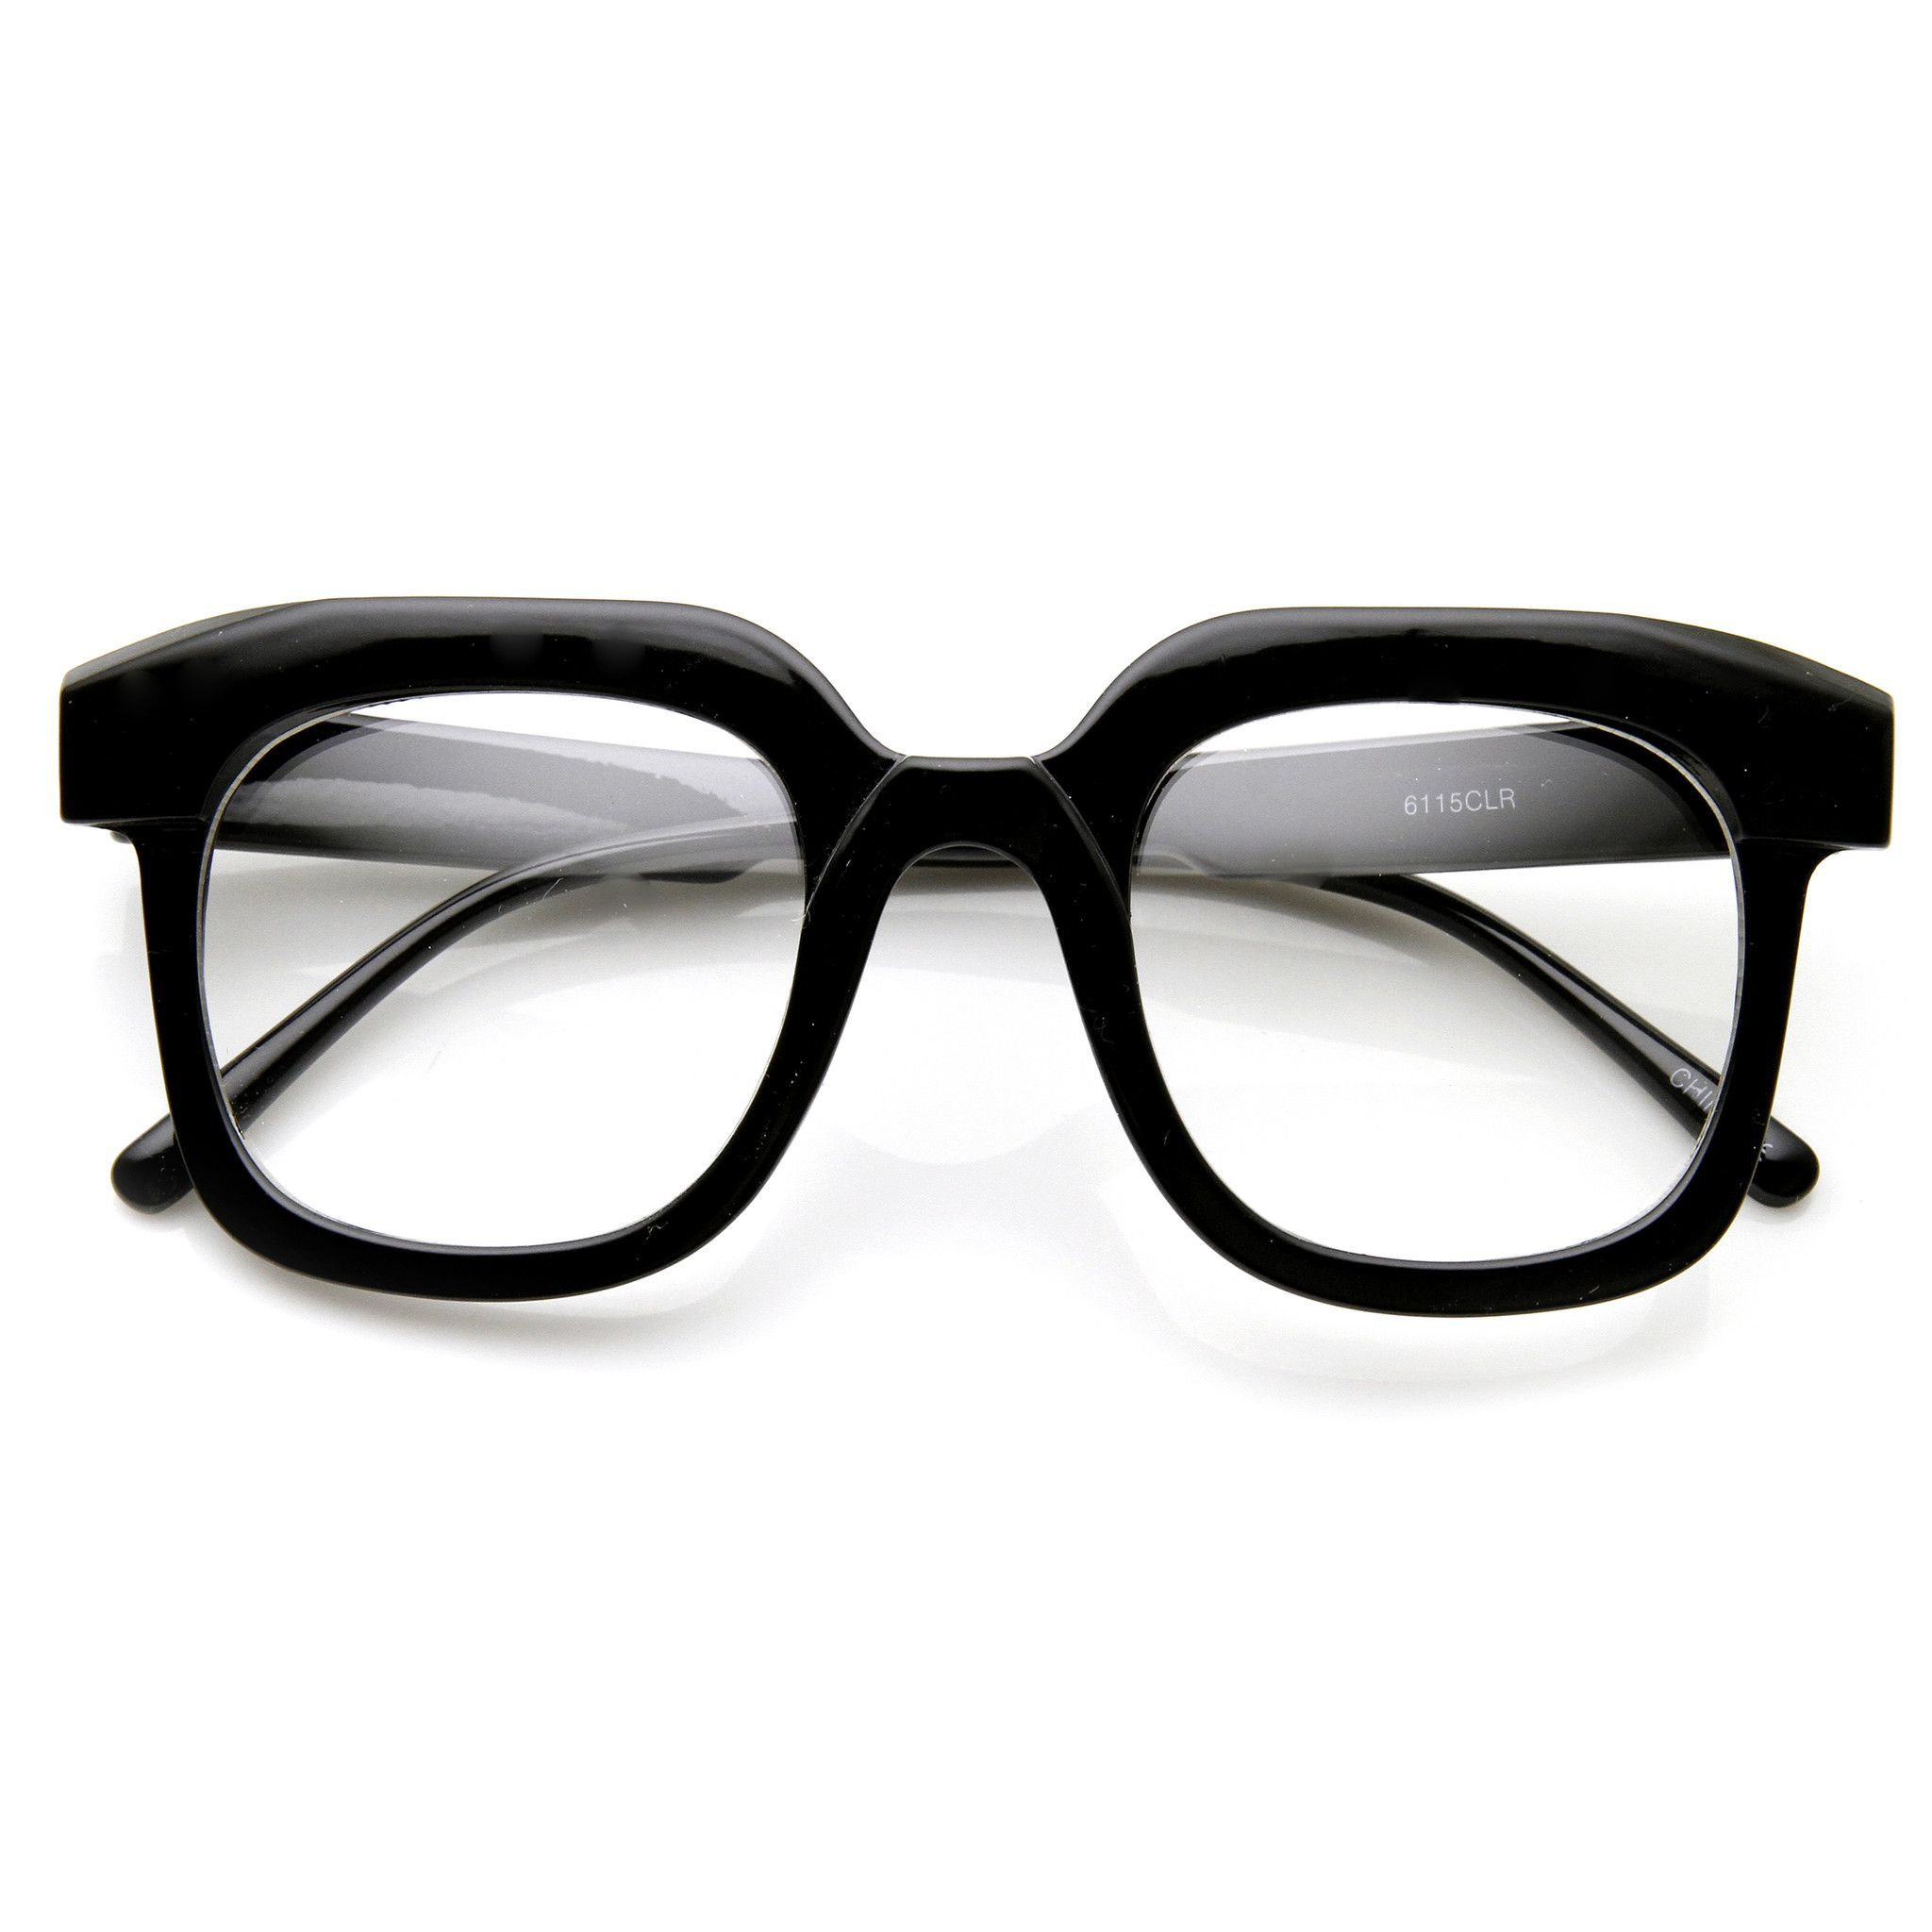 Men Women Hipster Eye Frame Clear Lens Fashion Glasses Retro Horn Rim Nerd Geek